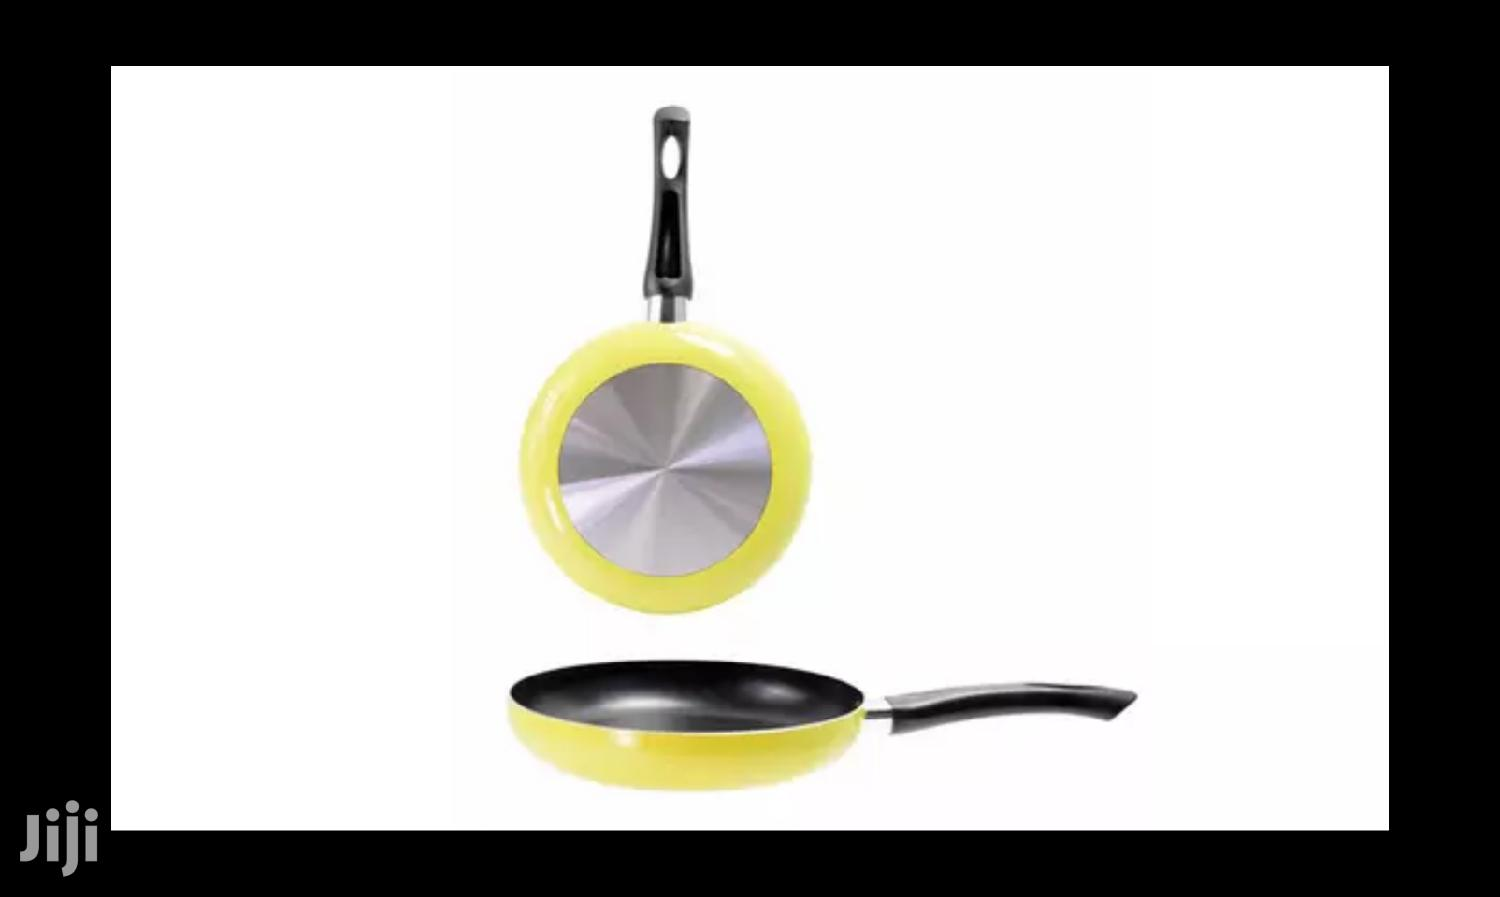 Non Stick Heavy Duty Cooking Pans | Kitchen & Dining for sale in Nairobi Central, Nairobi, Kenya